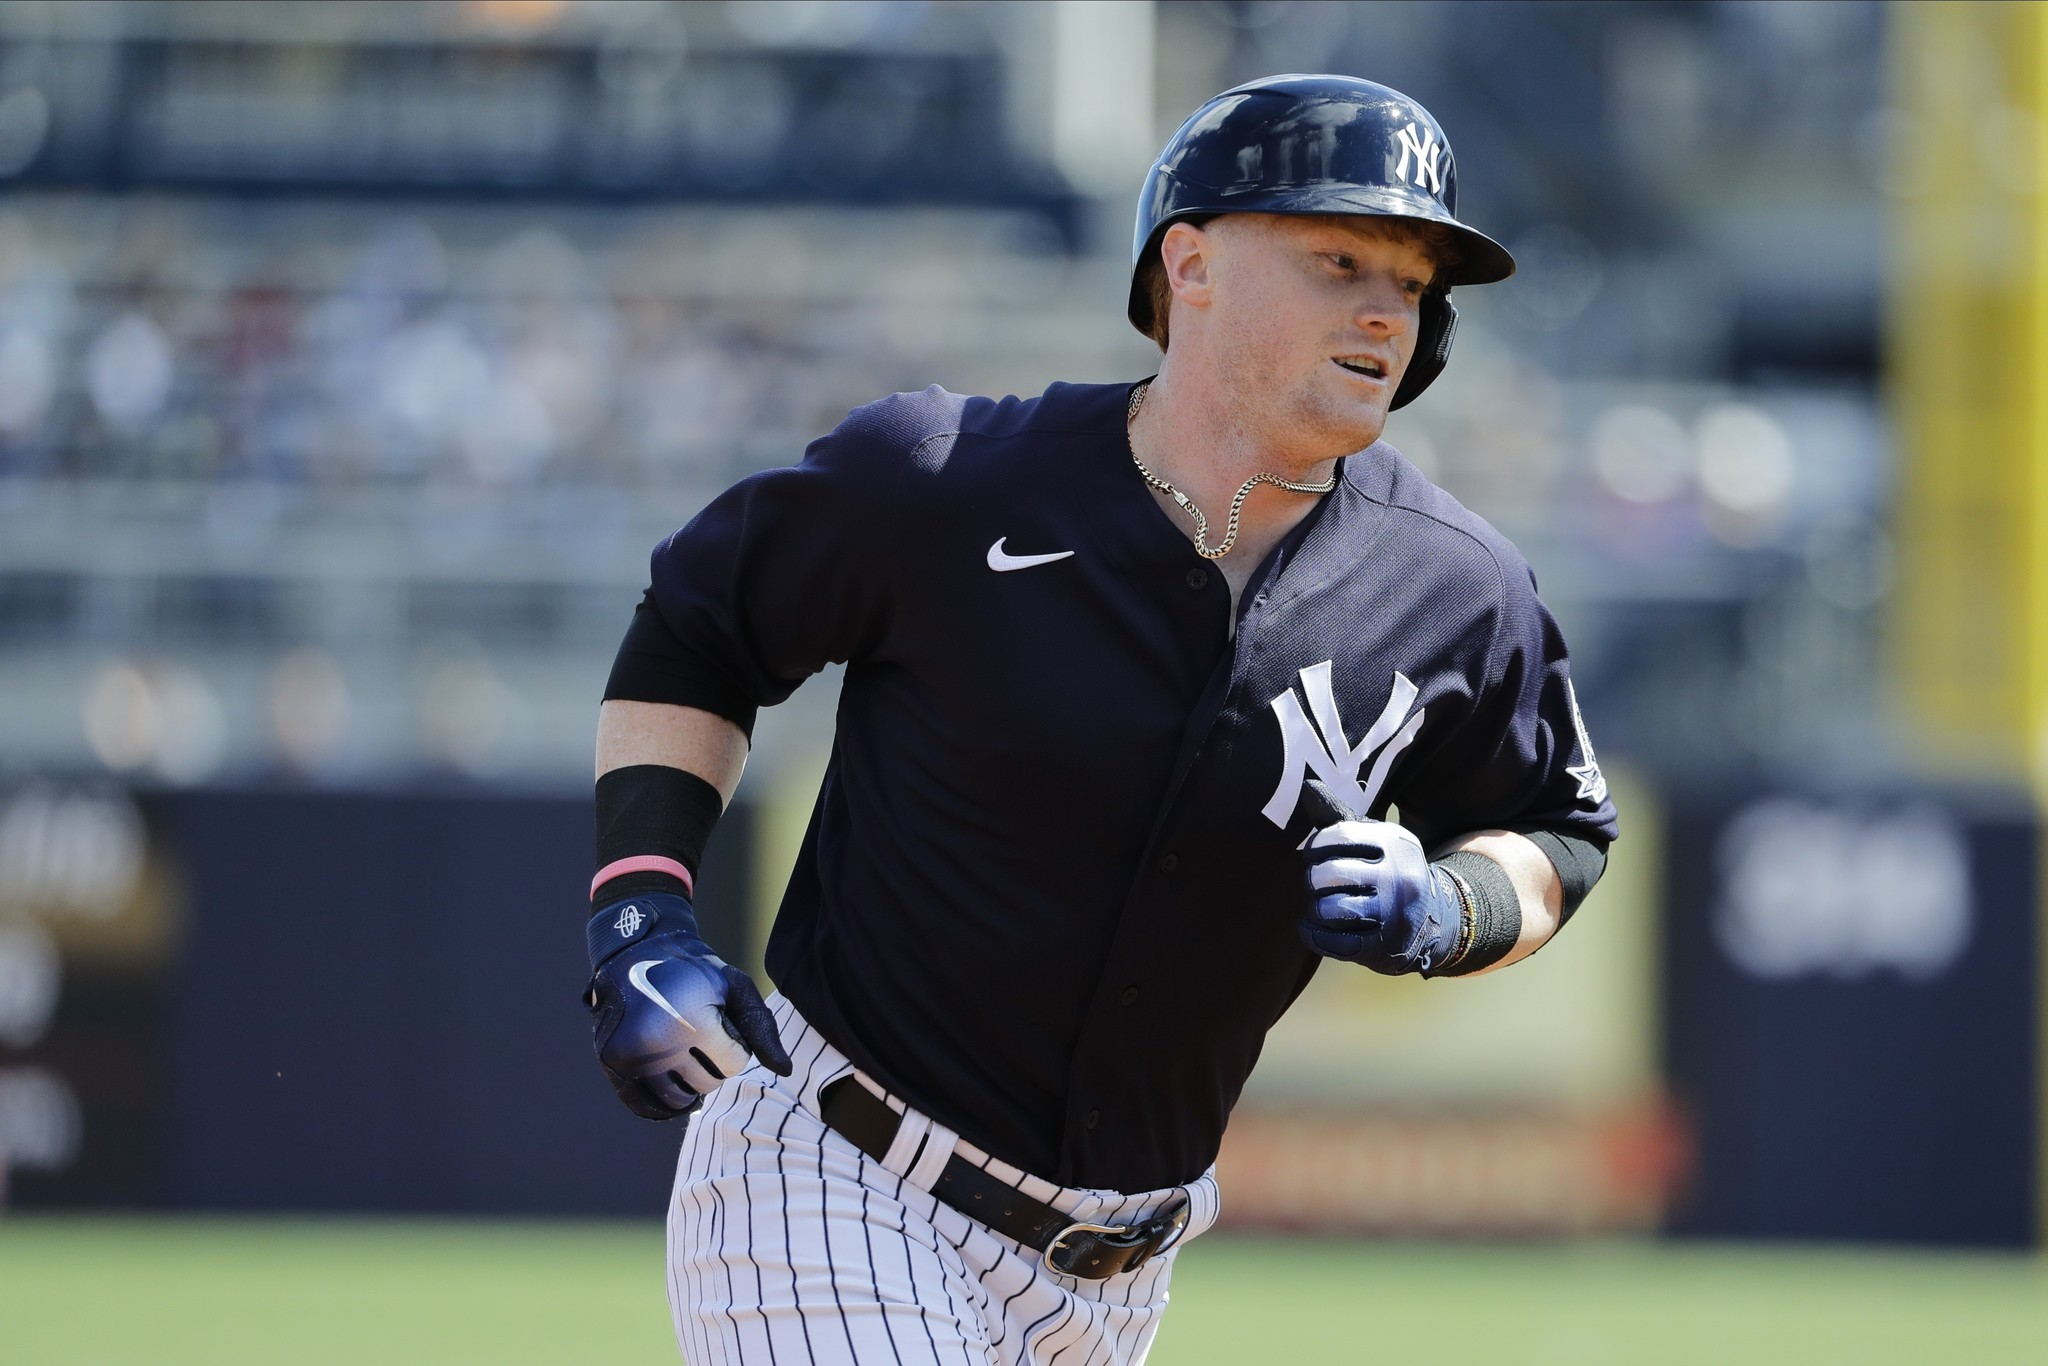 Clint Frazier is quietly making his case for a return to the Yankees roster